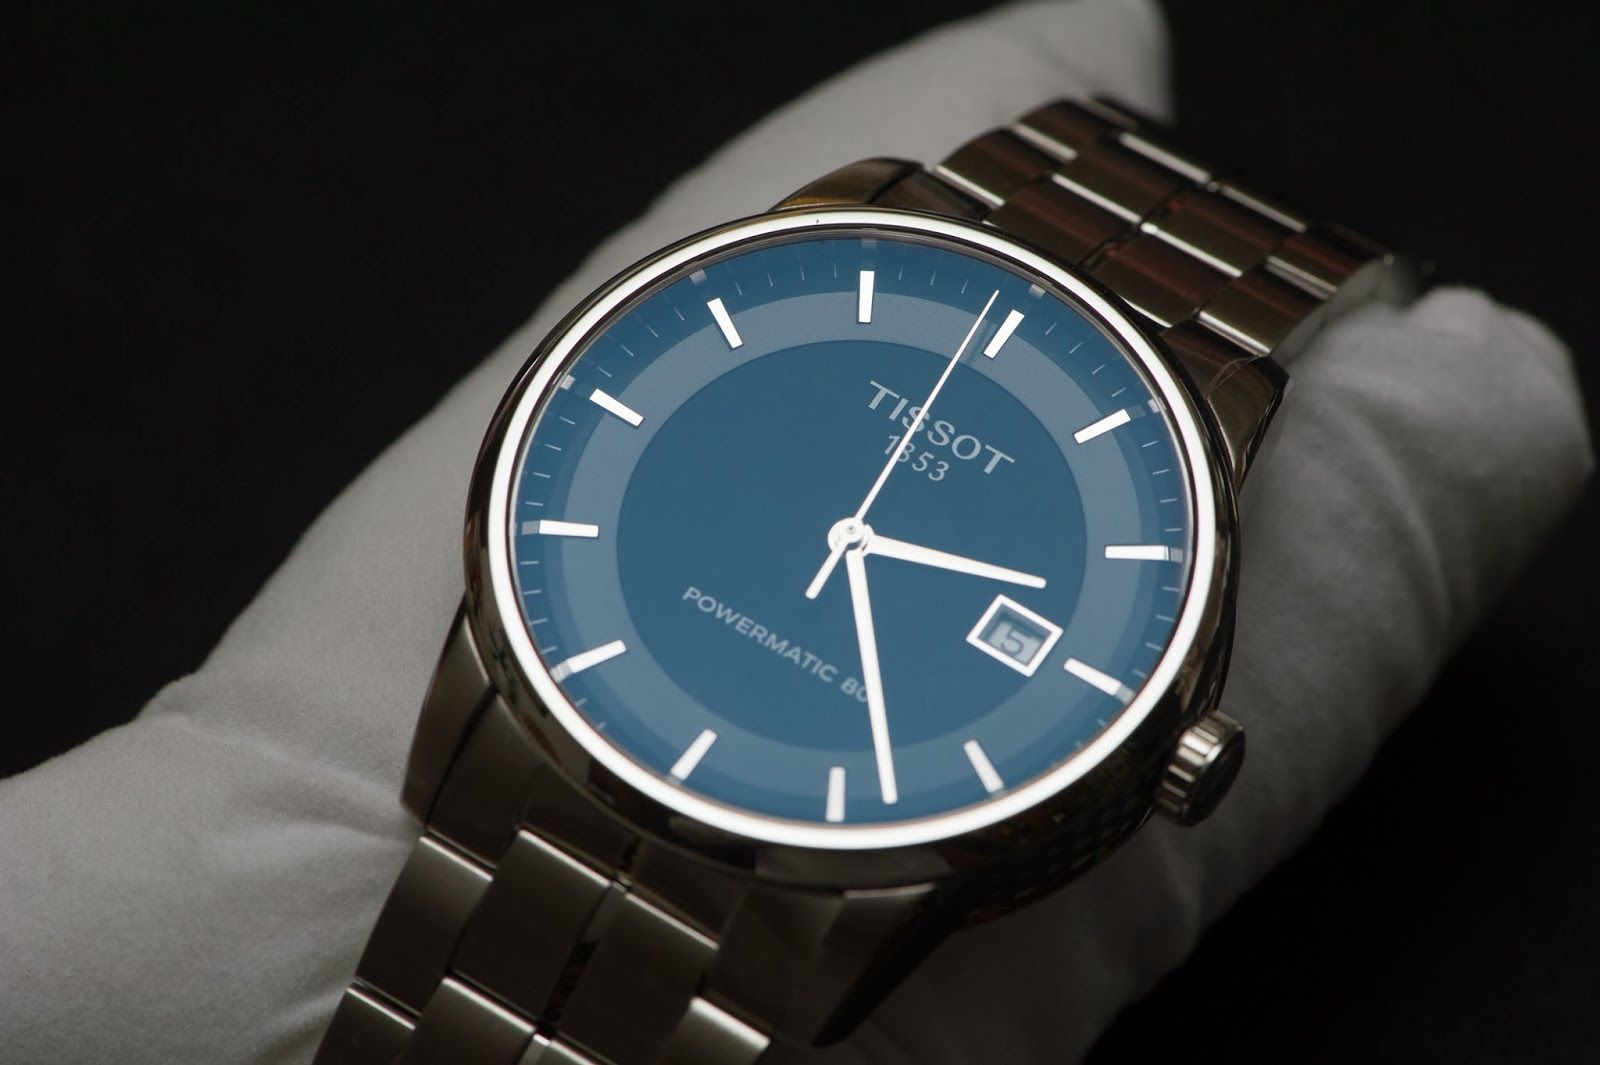 Tissot Watches for Men 2014 Latest watches, Watches for